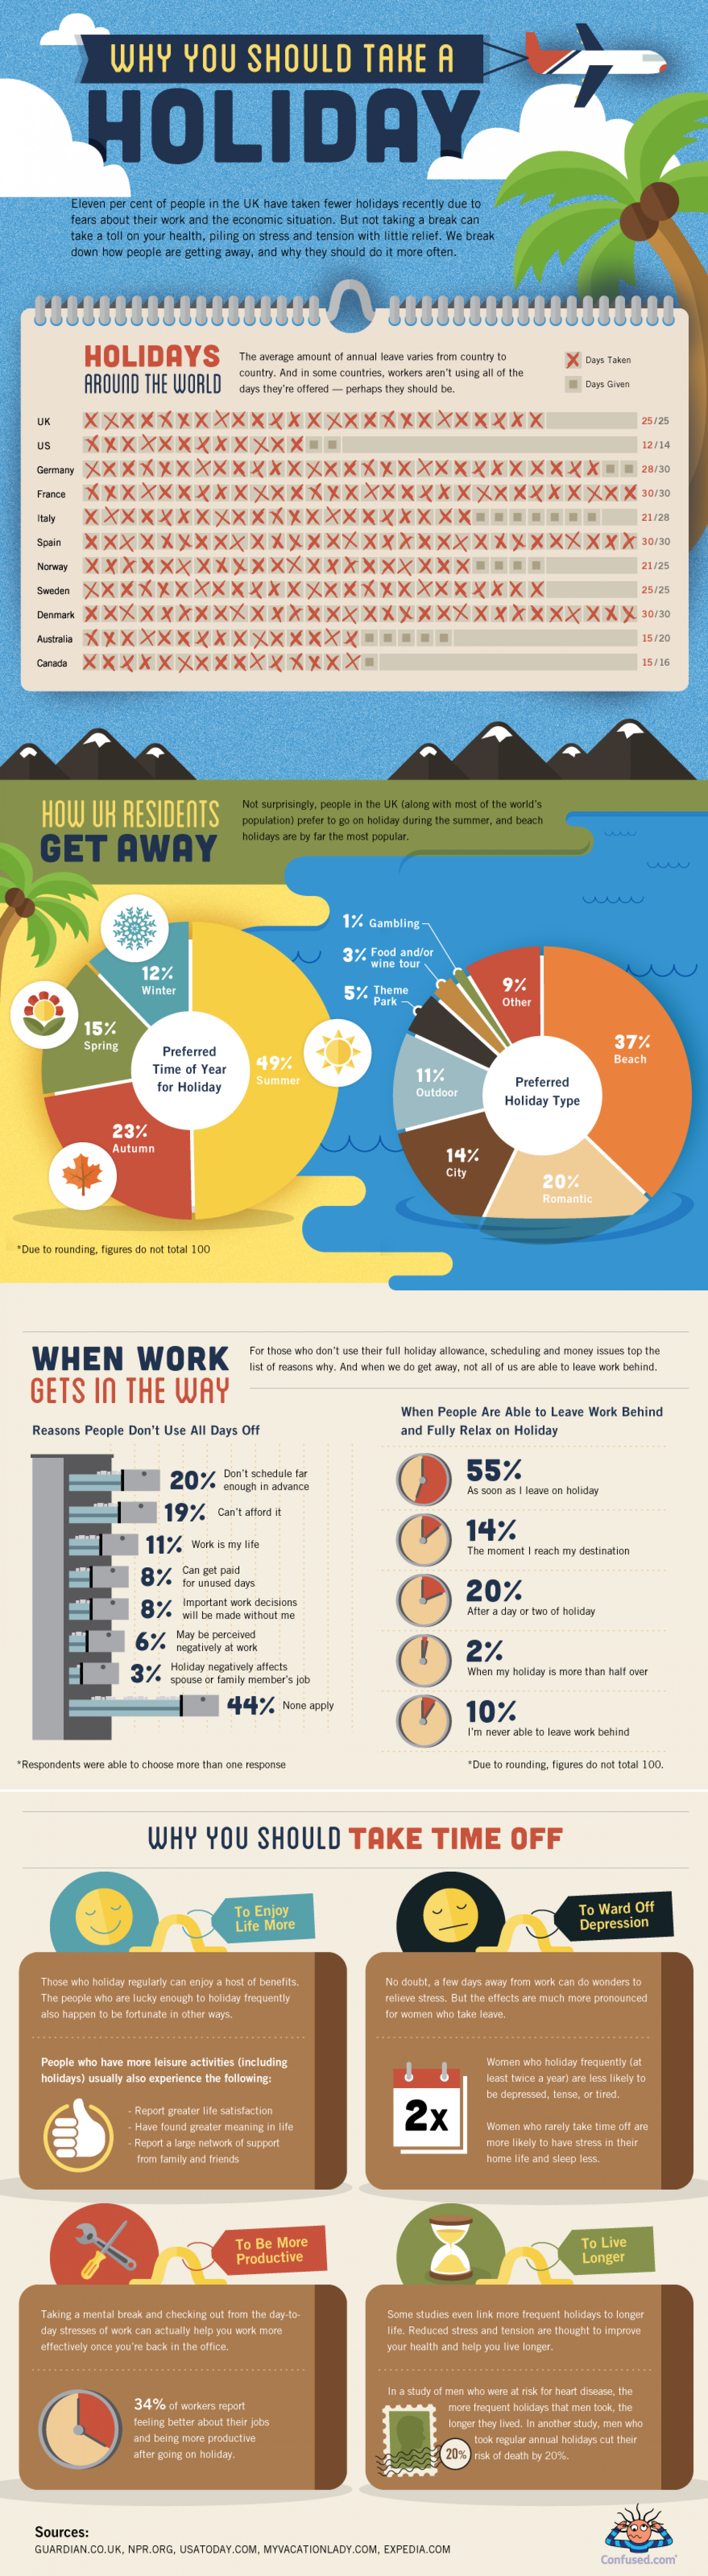 Why You Should Take A Holiday Infographic